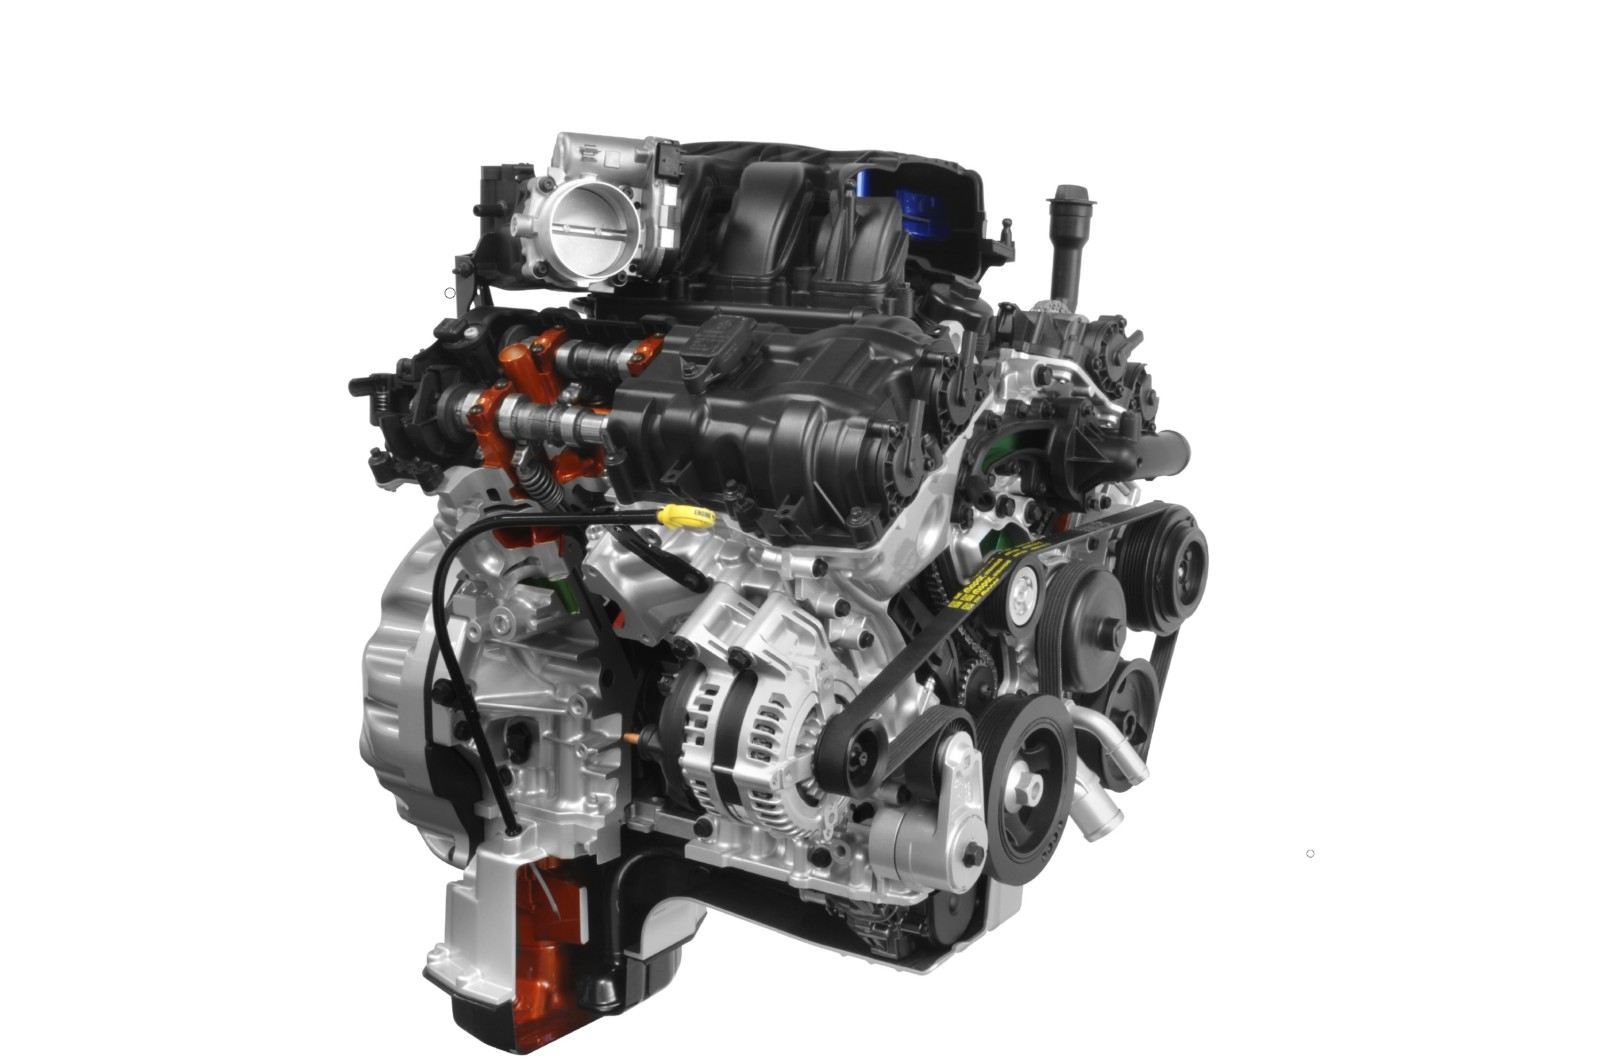 Chrysler To Follow Trend, Add Direct Injection To V-6 ...